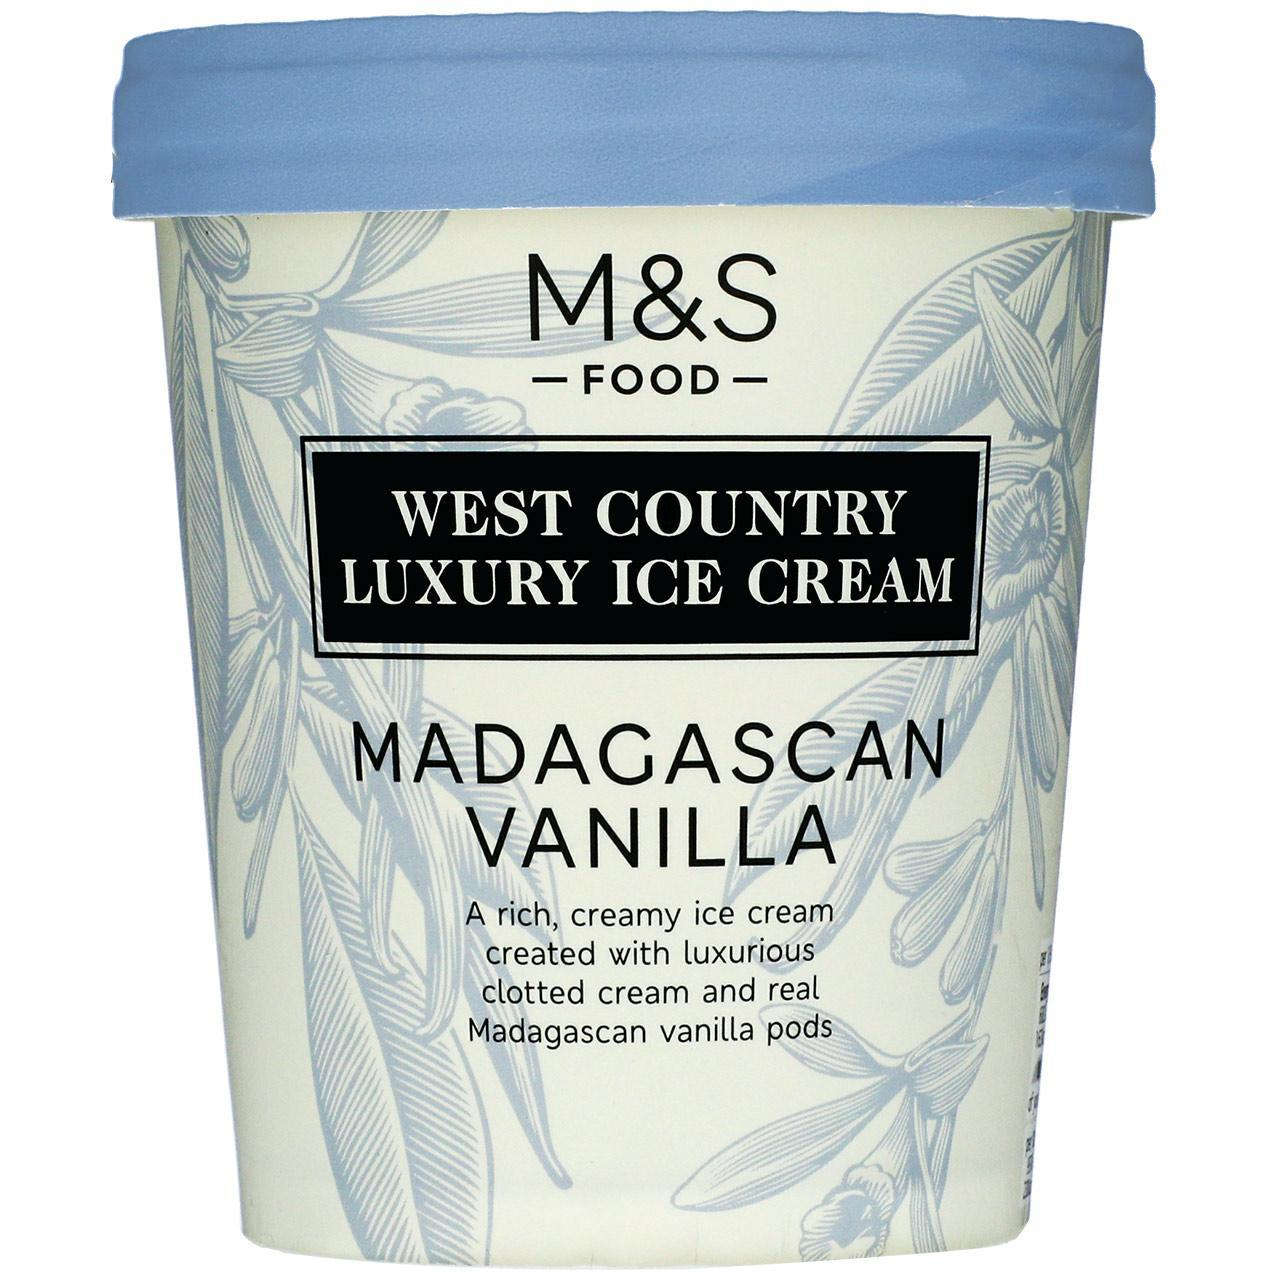 Madagascan Vanilla Ice Cream 500ml